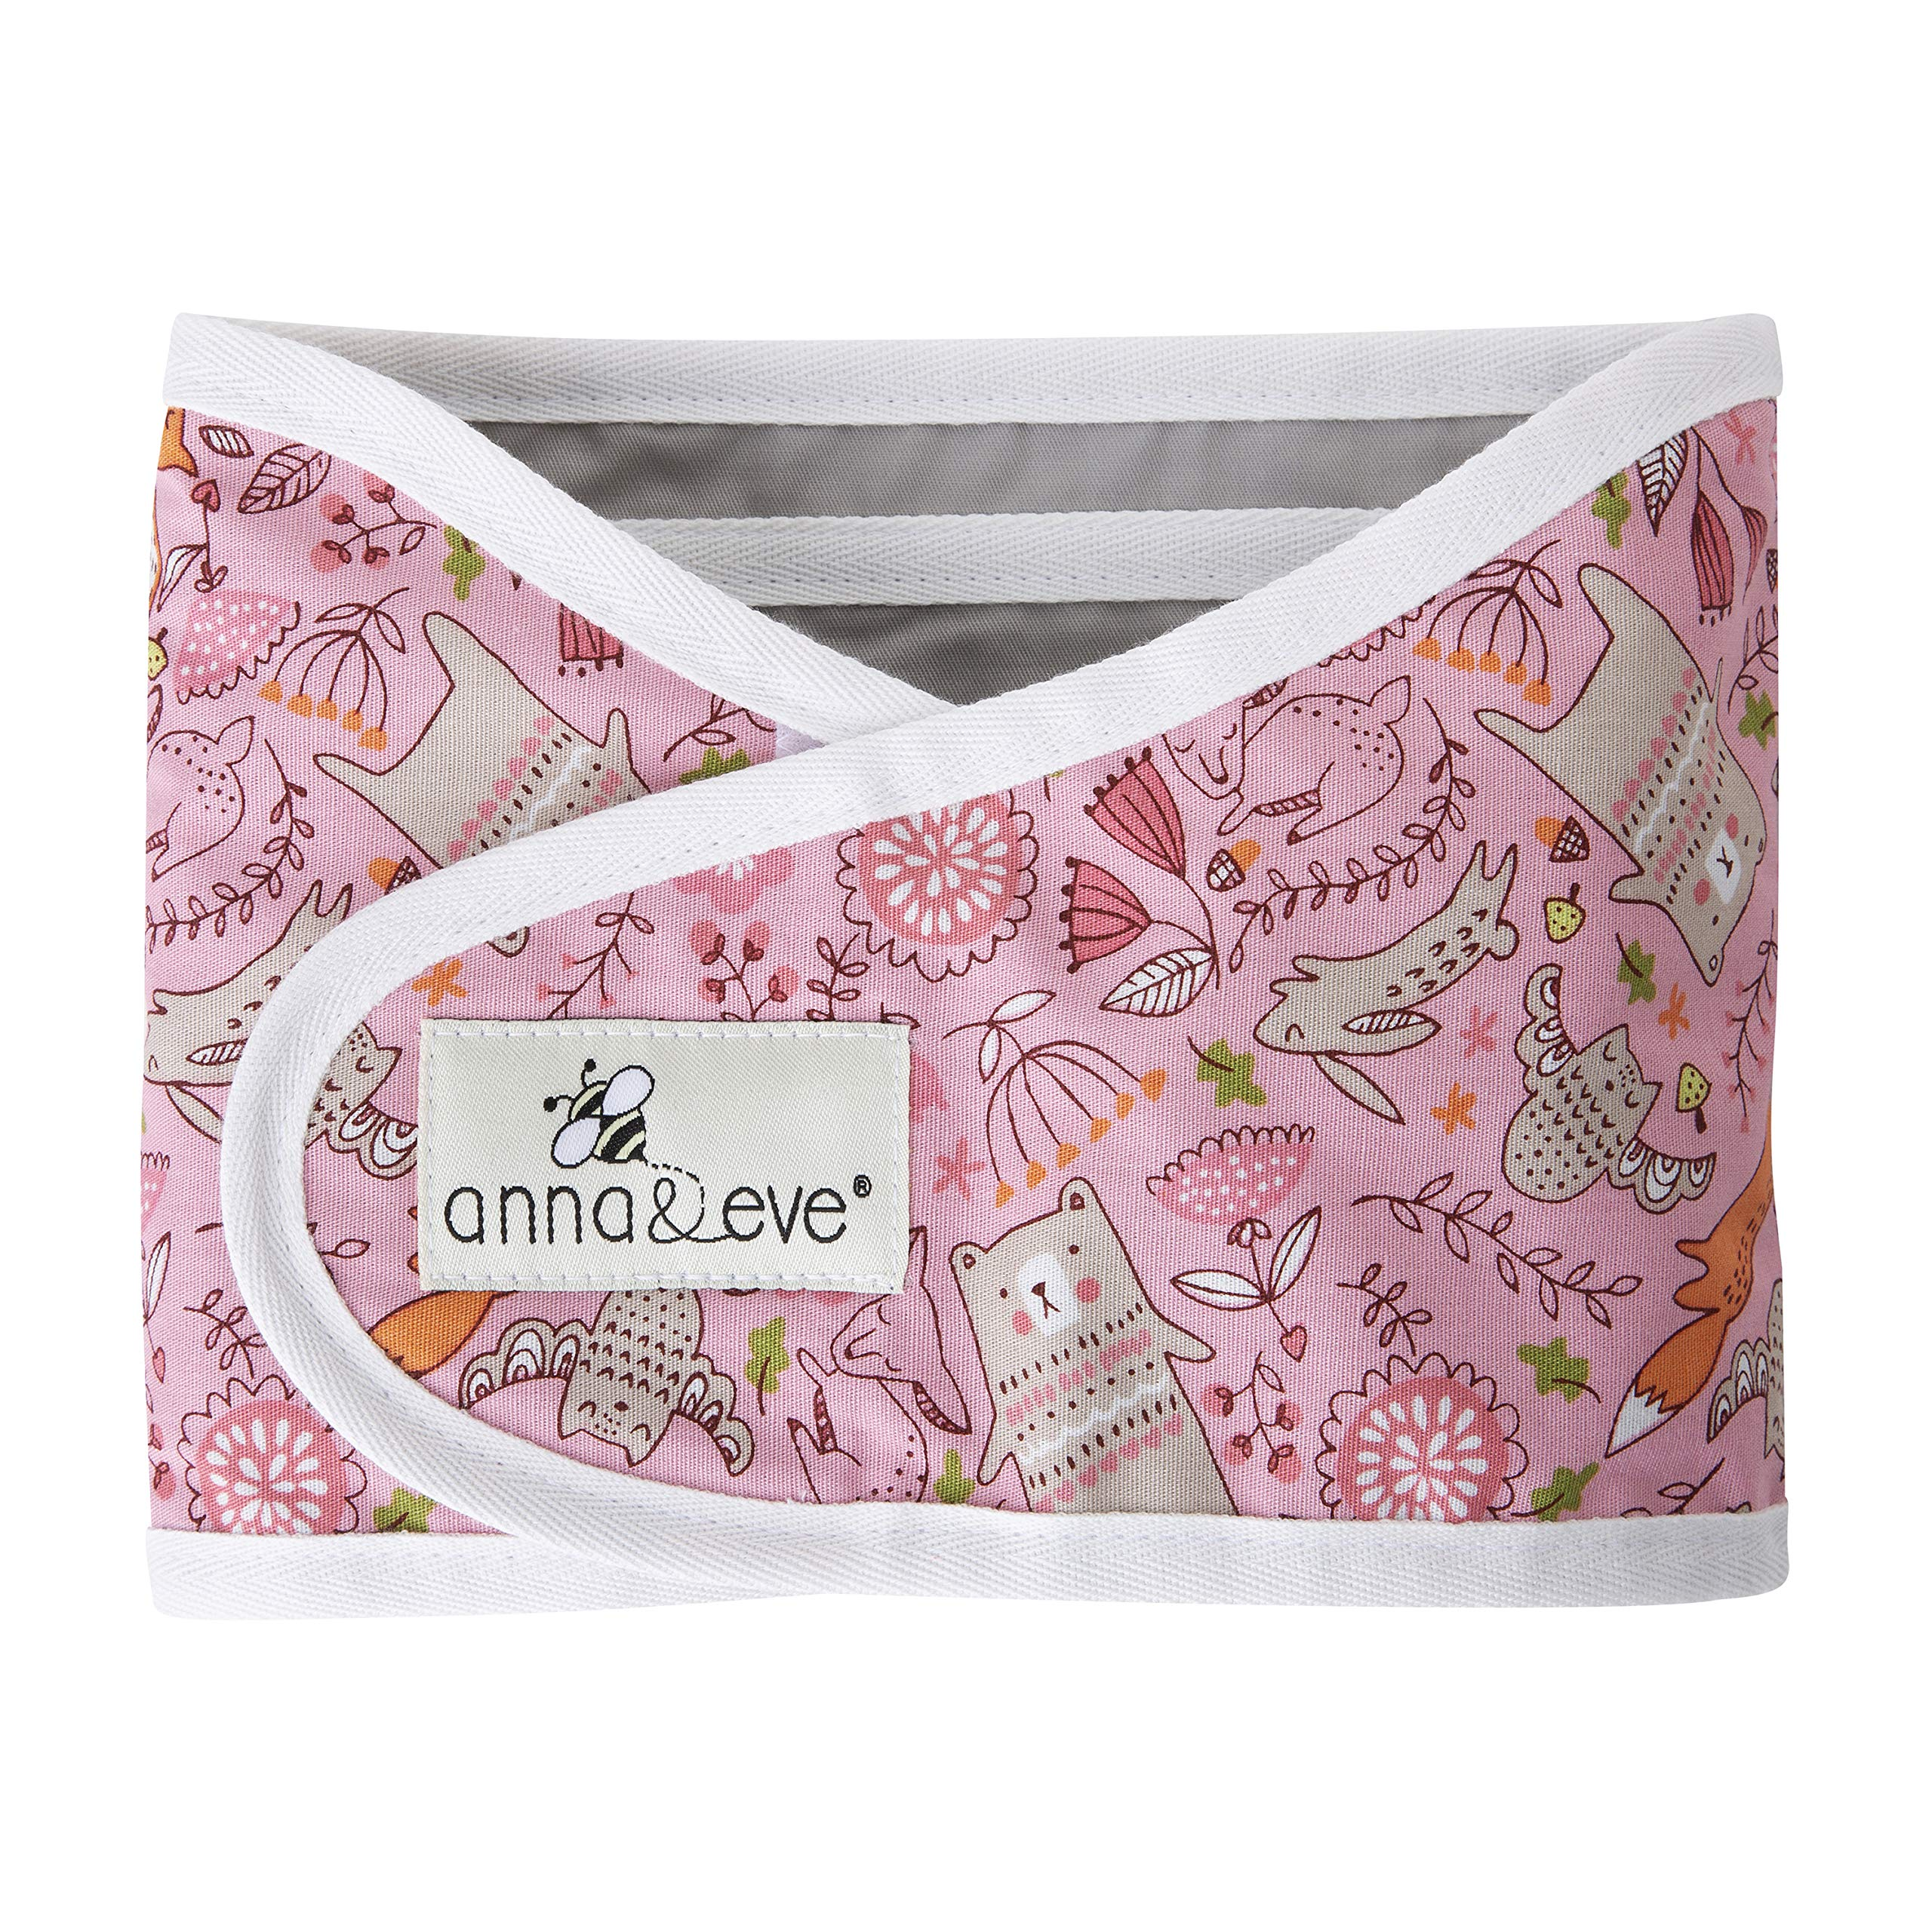 Anna & Eve - Baby Swaddle Strap, Adjustable Arms Only Wrap for Safe Sleeping - Small Size Fits Chest 13.5 to 17, Woodland Pink